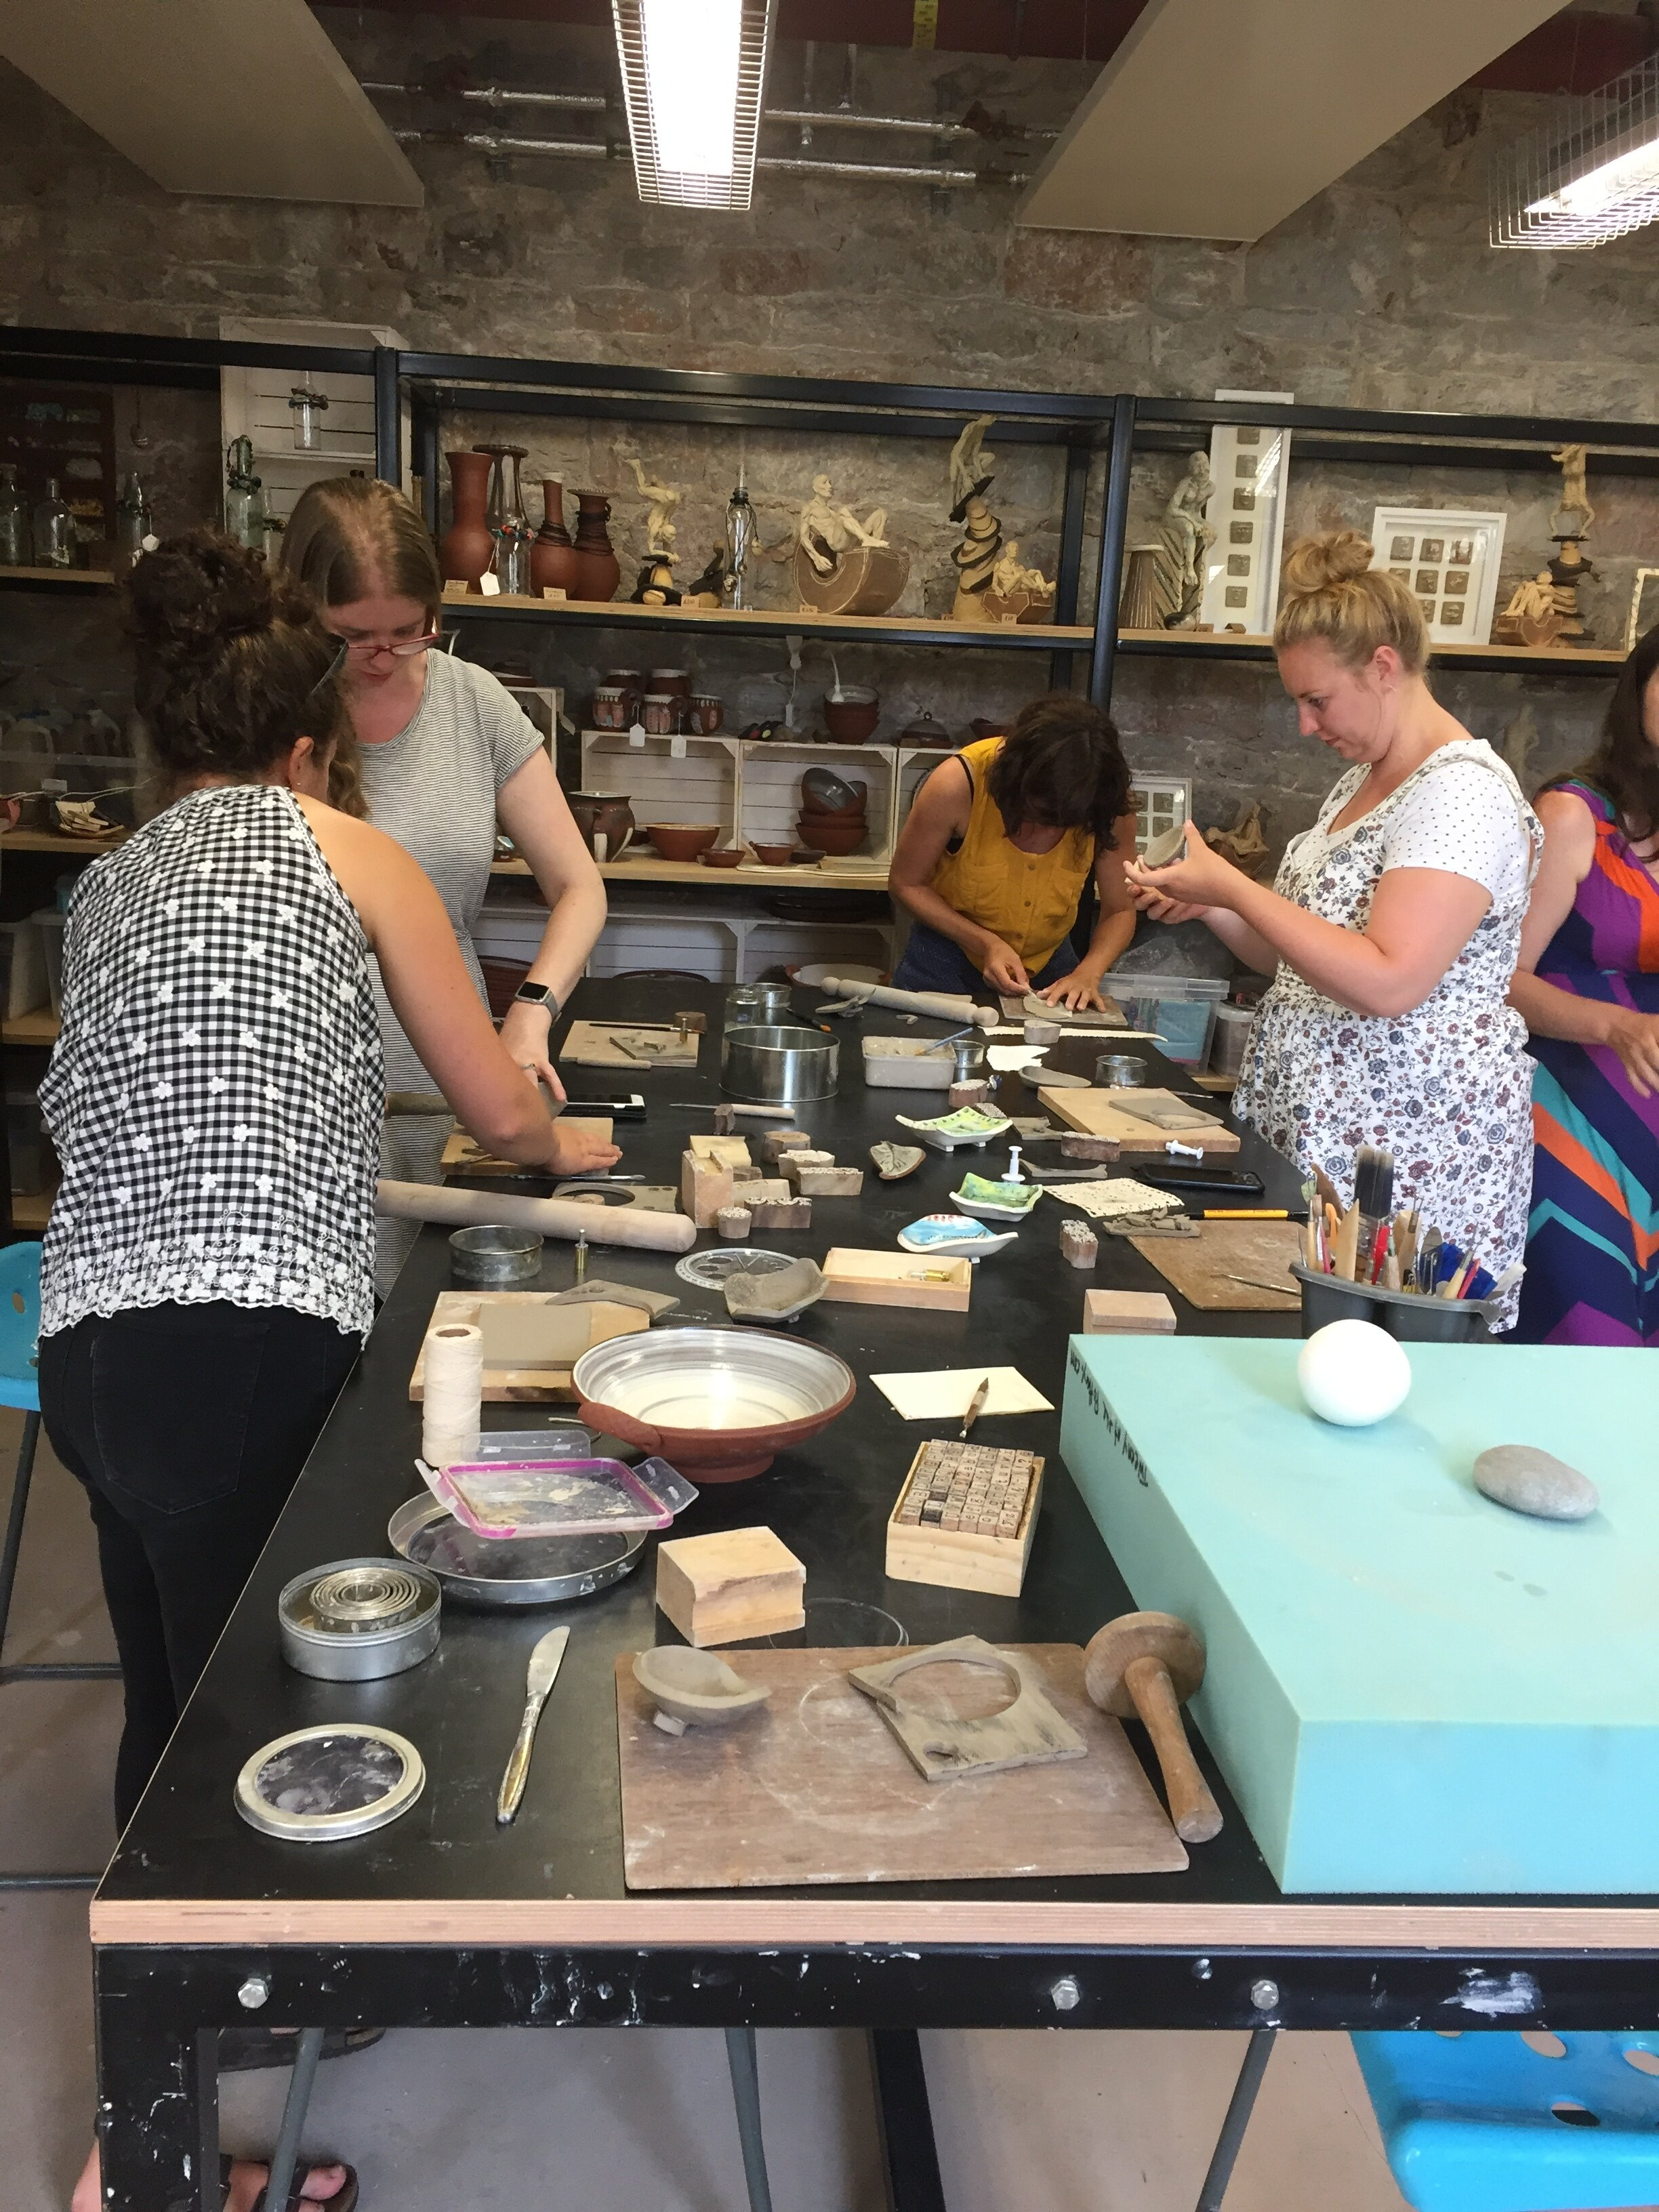 Friends and Celebrations - These bespoke 2 hour sessions are an original way to celebrate a special Occassion with your friends. These workshops can accommodate up to 6 adults. Choose from a range of workshops including:MAKING SOAP/TRINKET DISHESMAKING FAVOURS FOR YOUR WEDDINGCREATING SLUP DISHESPANDORAS BOXESCost per person £25. All materials and firing included.